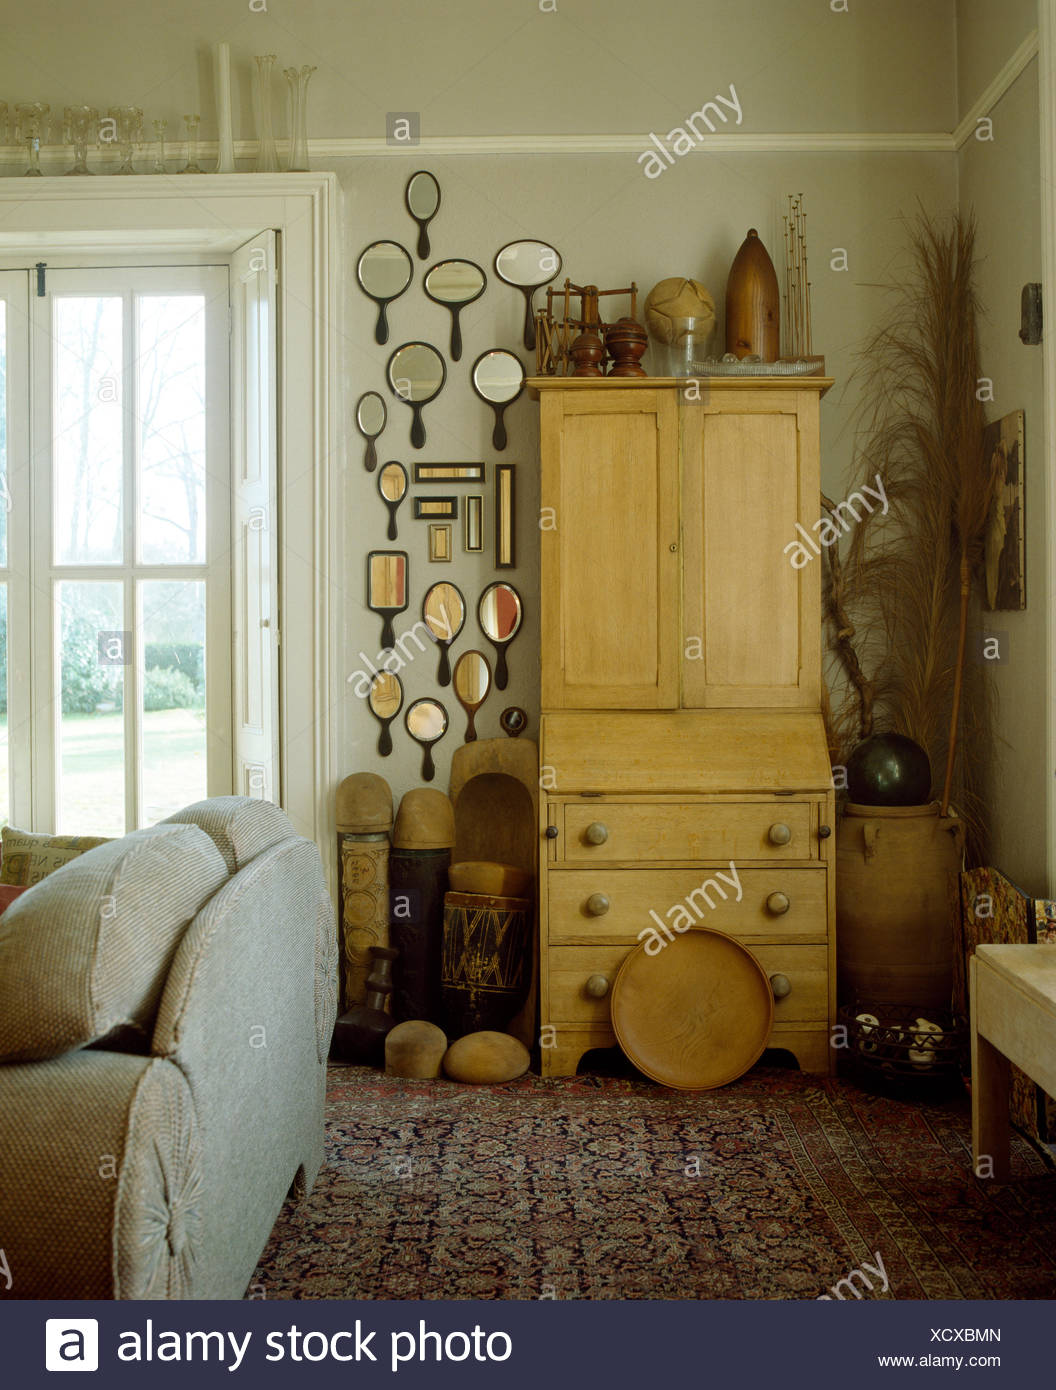 Superb Collection Of Vintage Hand Mirrors On Wall Beside Pine Download Free Architecture Designs Scobabritishbridgeorg